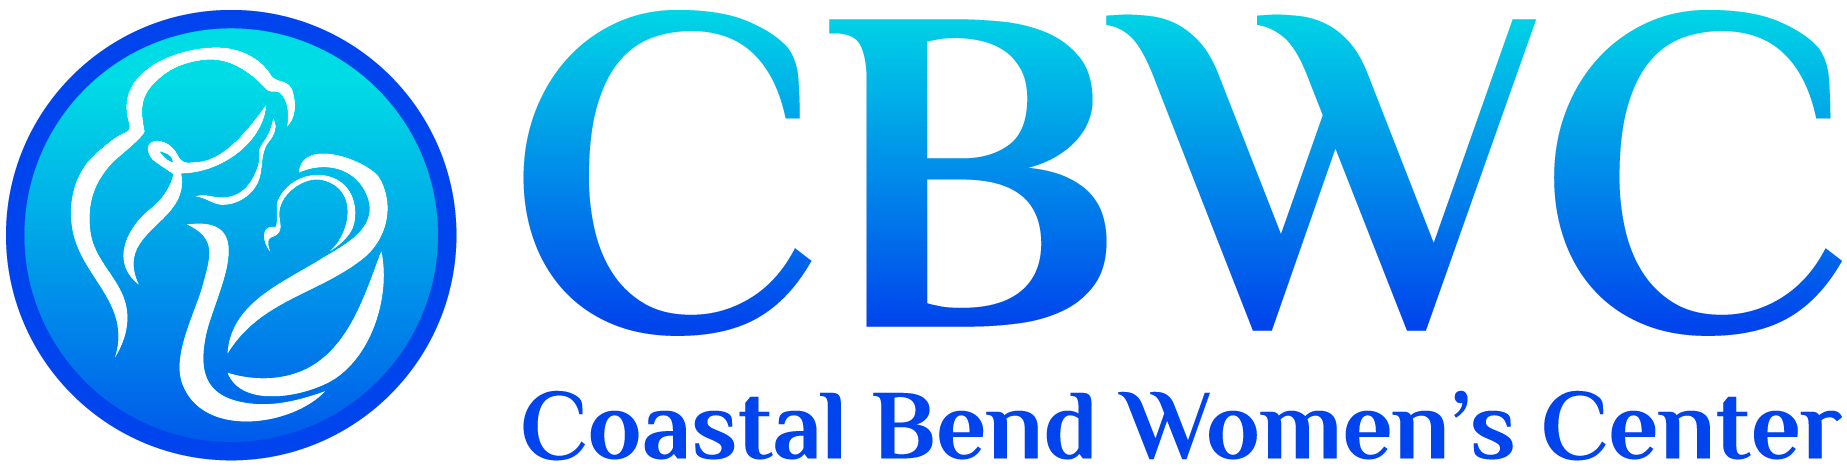 CBWC-Gradient-Final-small-rectangle